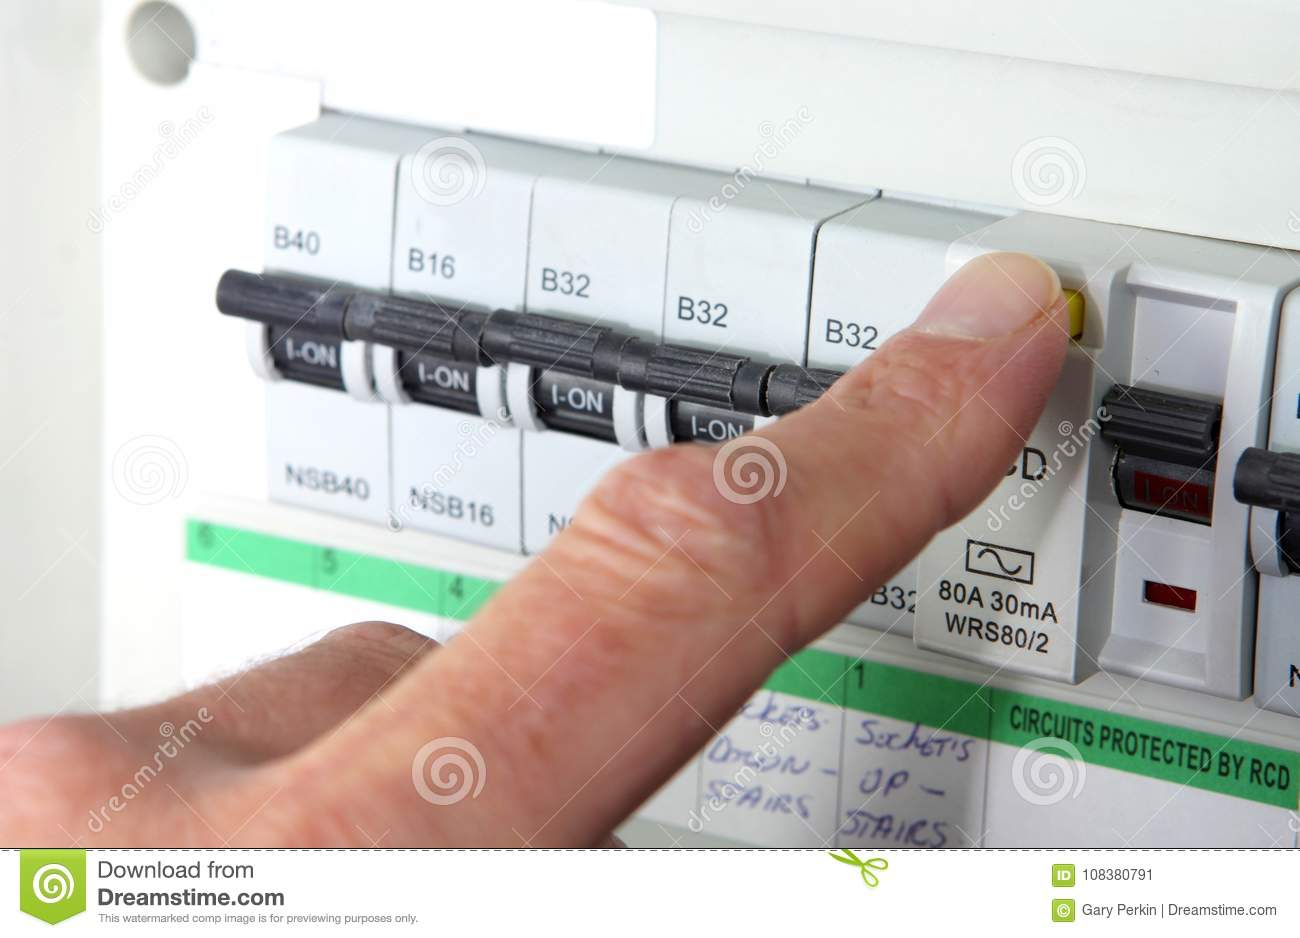 Testing Fuse Box Electrical Wiring Diagram Car Making Noise An Rcd X28 Residual Current Device X29 On A Uk Domestic Rh Dreamstime Com With Multimeter